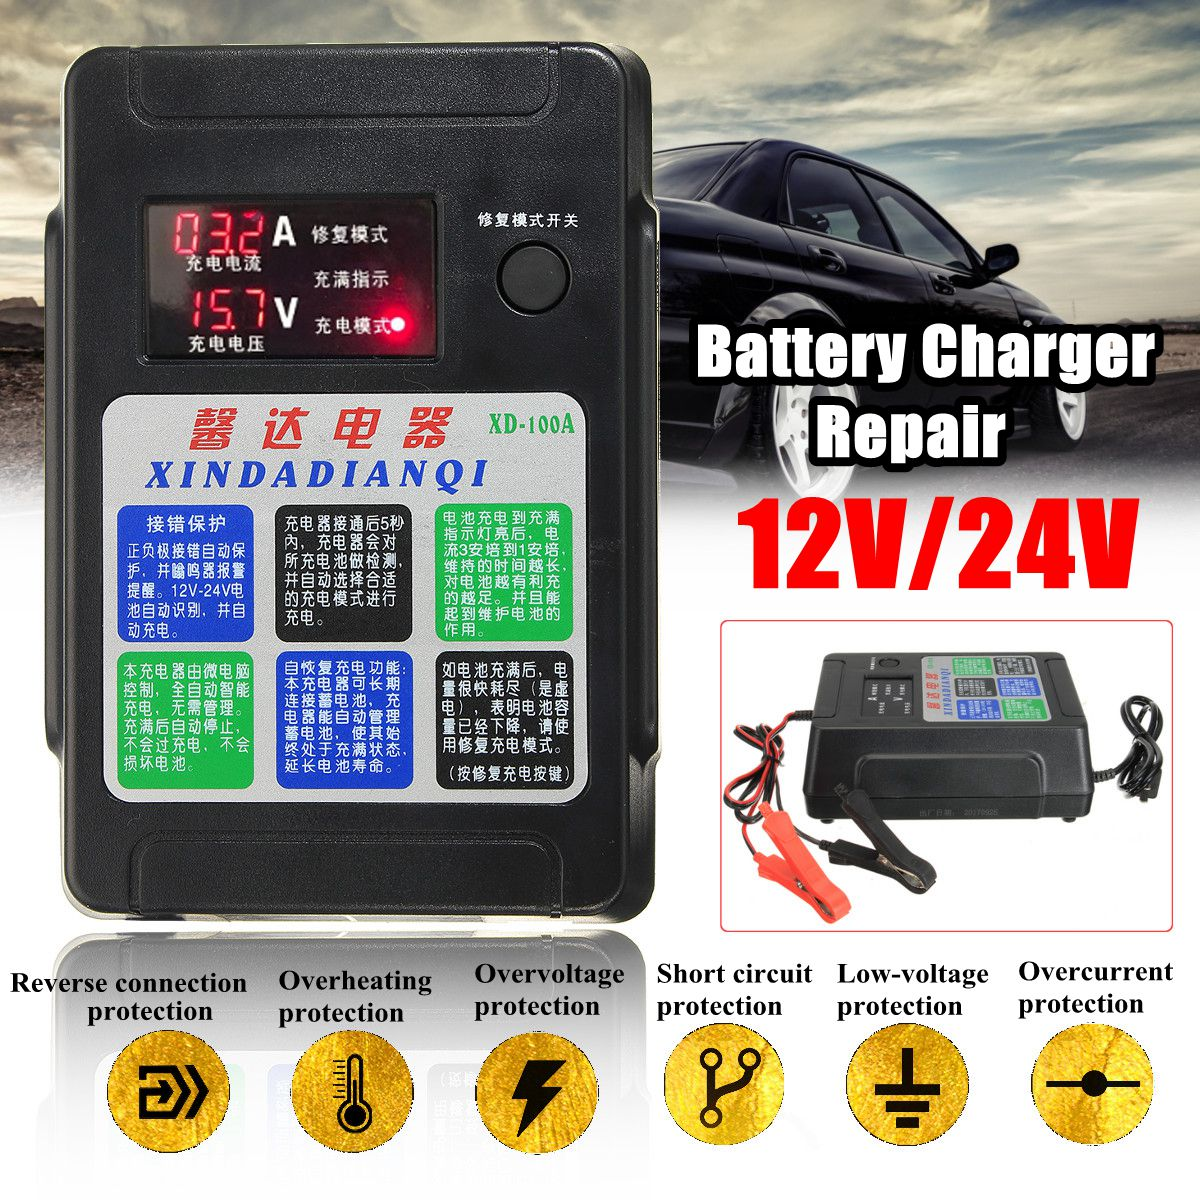 12V/24V 10A 220W Battery Charger Repair LCD Display Intelligent Charging Electric Automatic Type